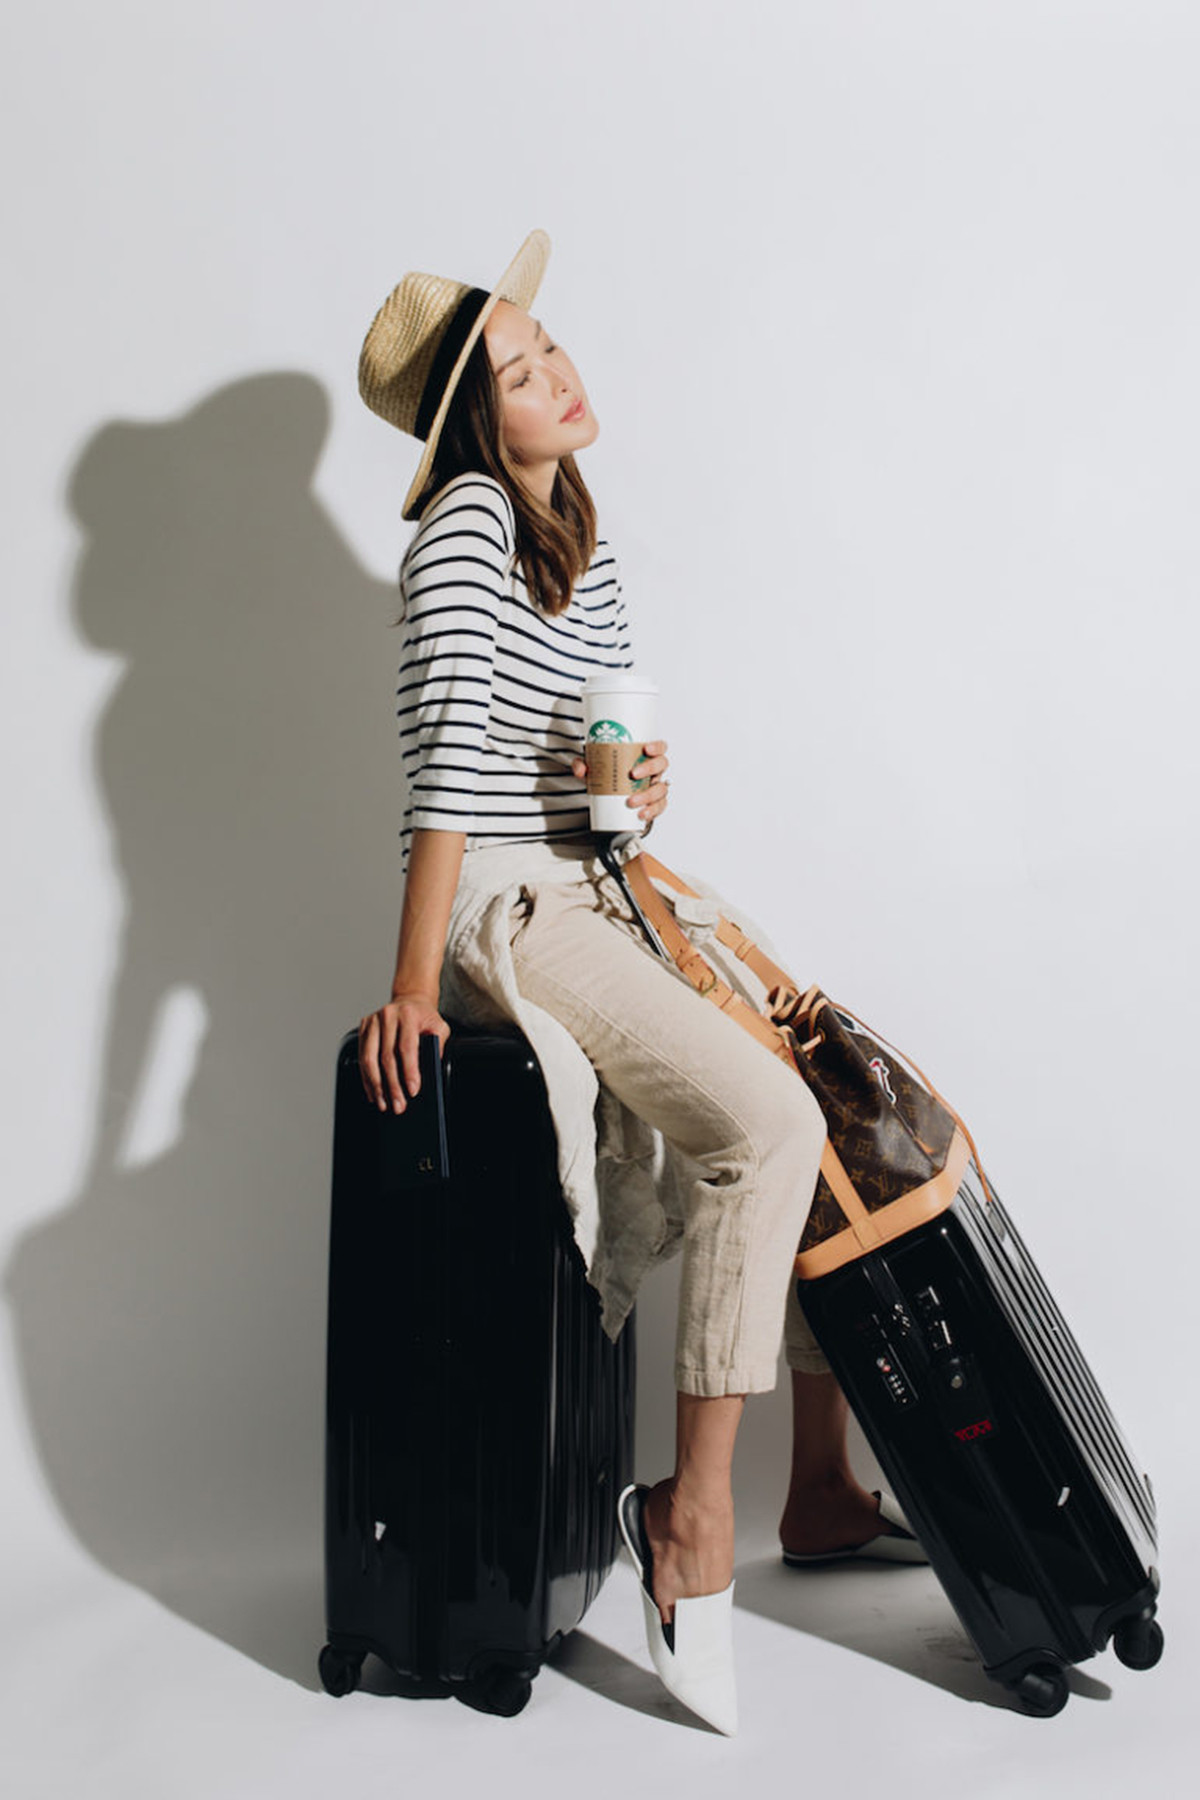 How 6 Tastemakers Curate The Perfect Travel Wardrobe